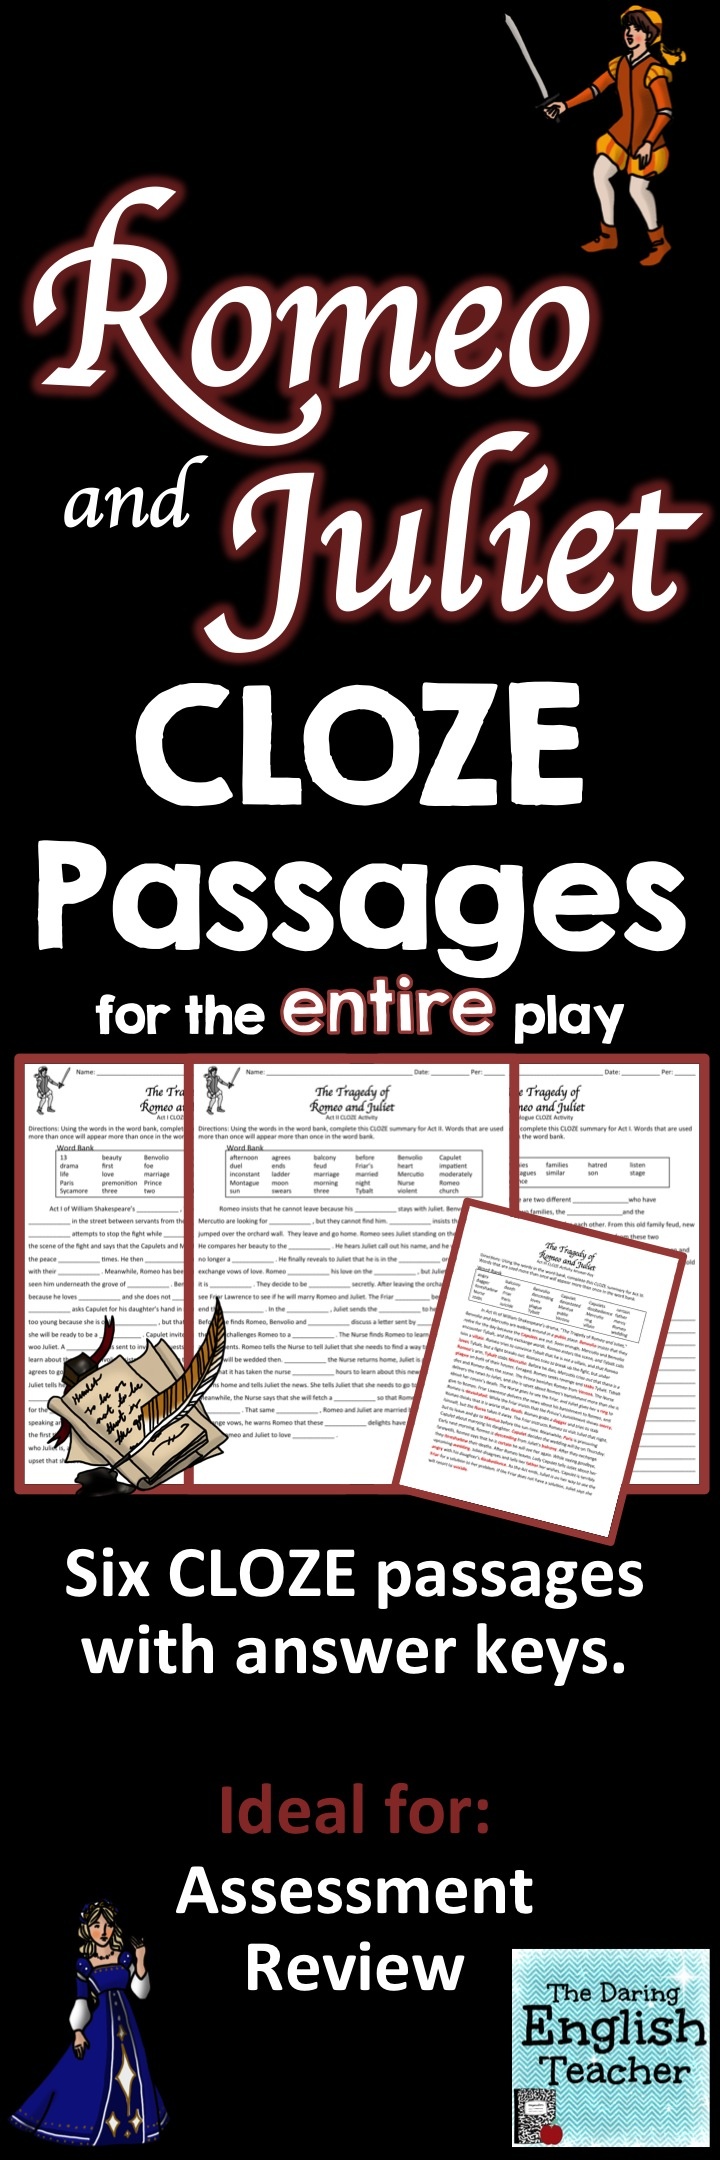 Teach Review And Asses Romeo Juliet With These Cloze Summary Passage There Are Six Differ Teaching Shakespeare Literature Lesson Inspiration Act 2 Prologue Meaning